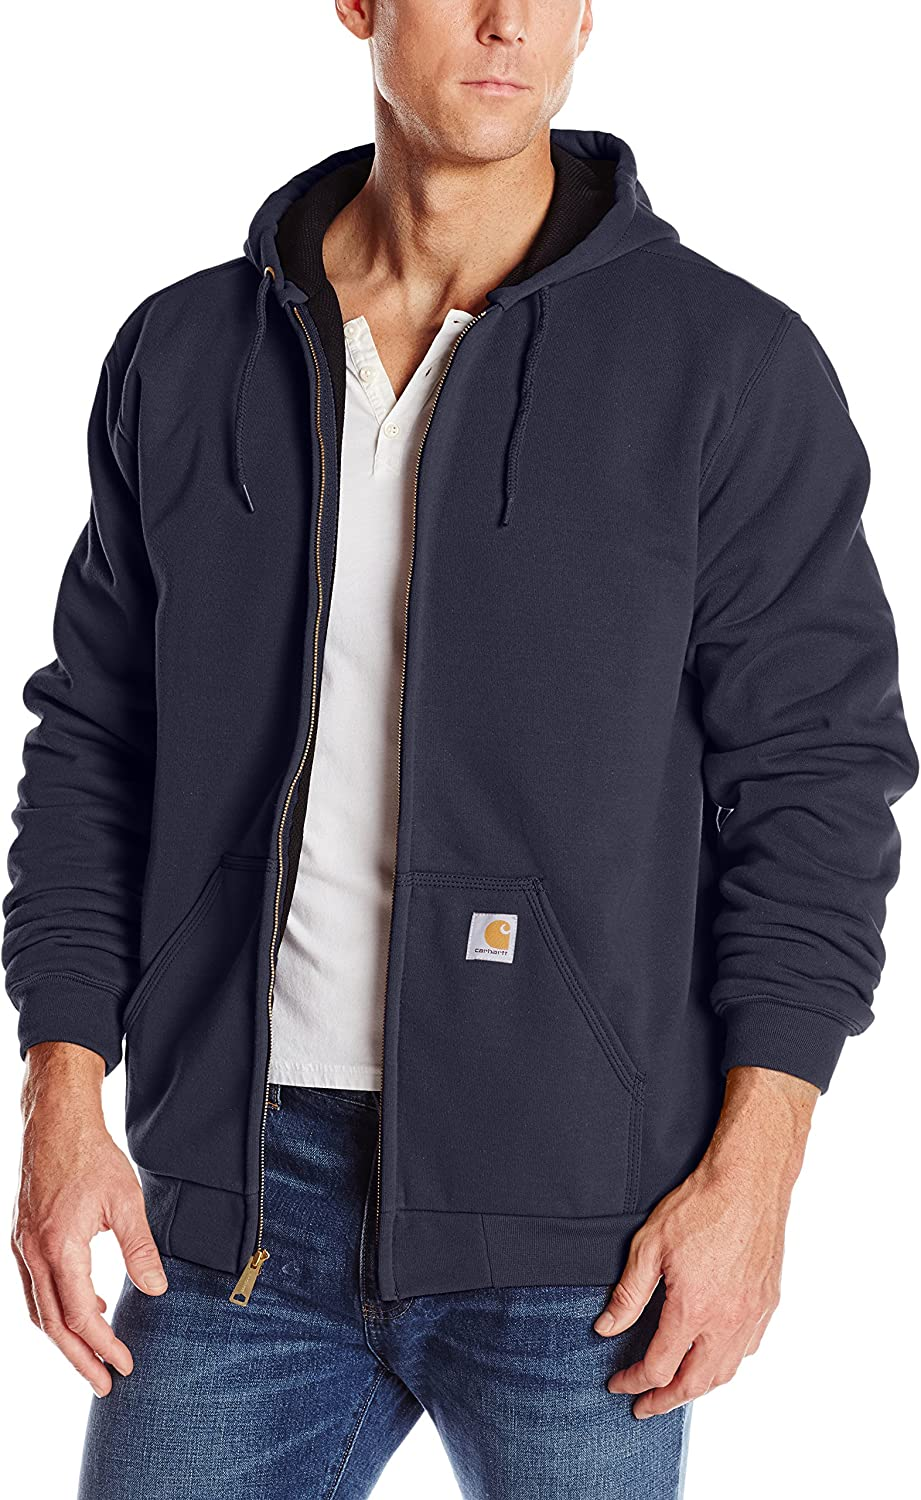 Carhartt Men's Big & Tall Rutland Thermal Lined Zip Front Sweatshirt Hoodie: Clothing